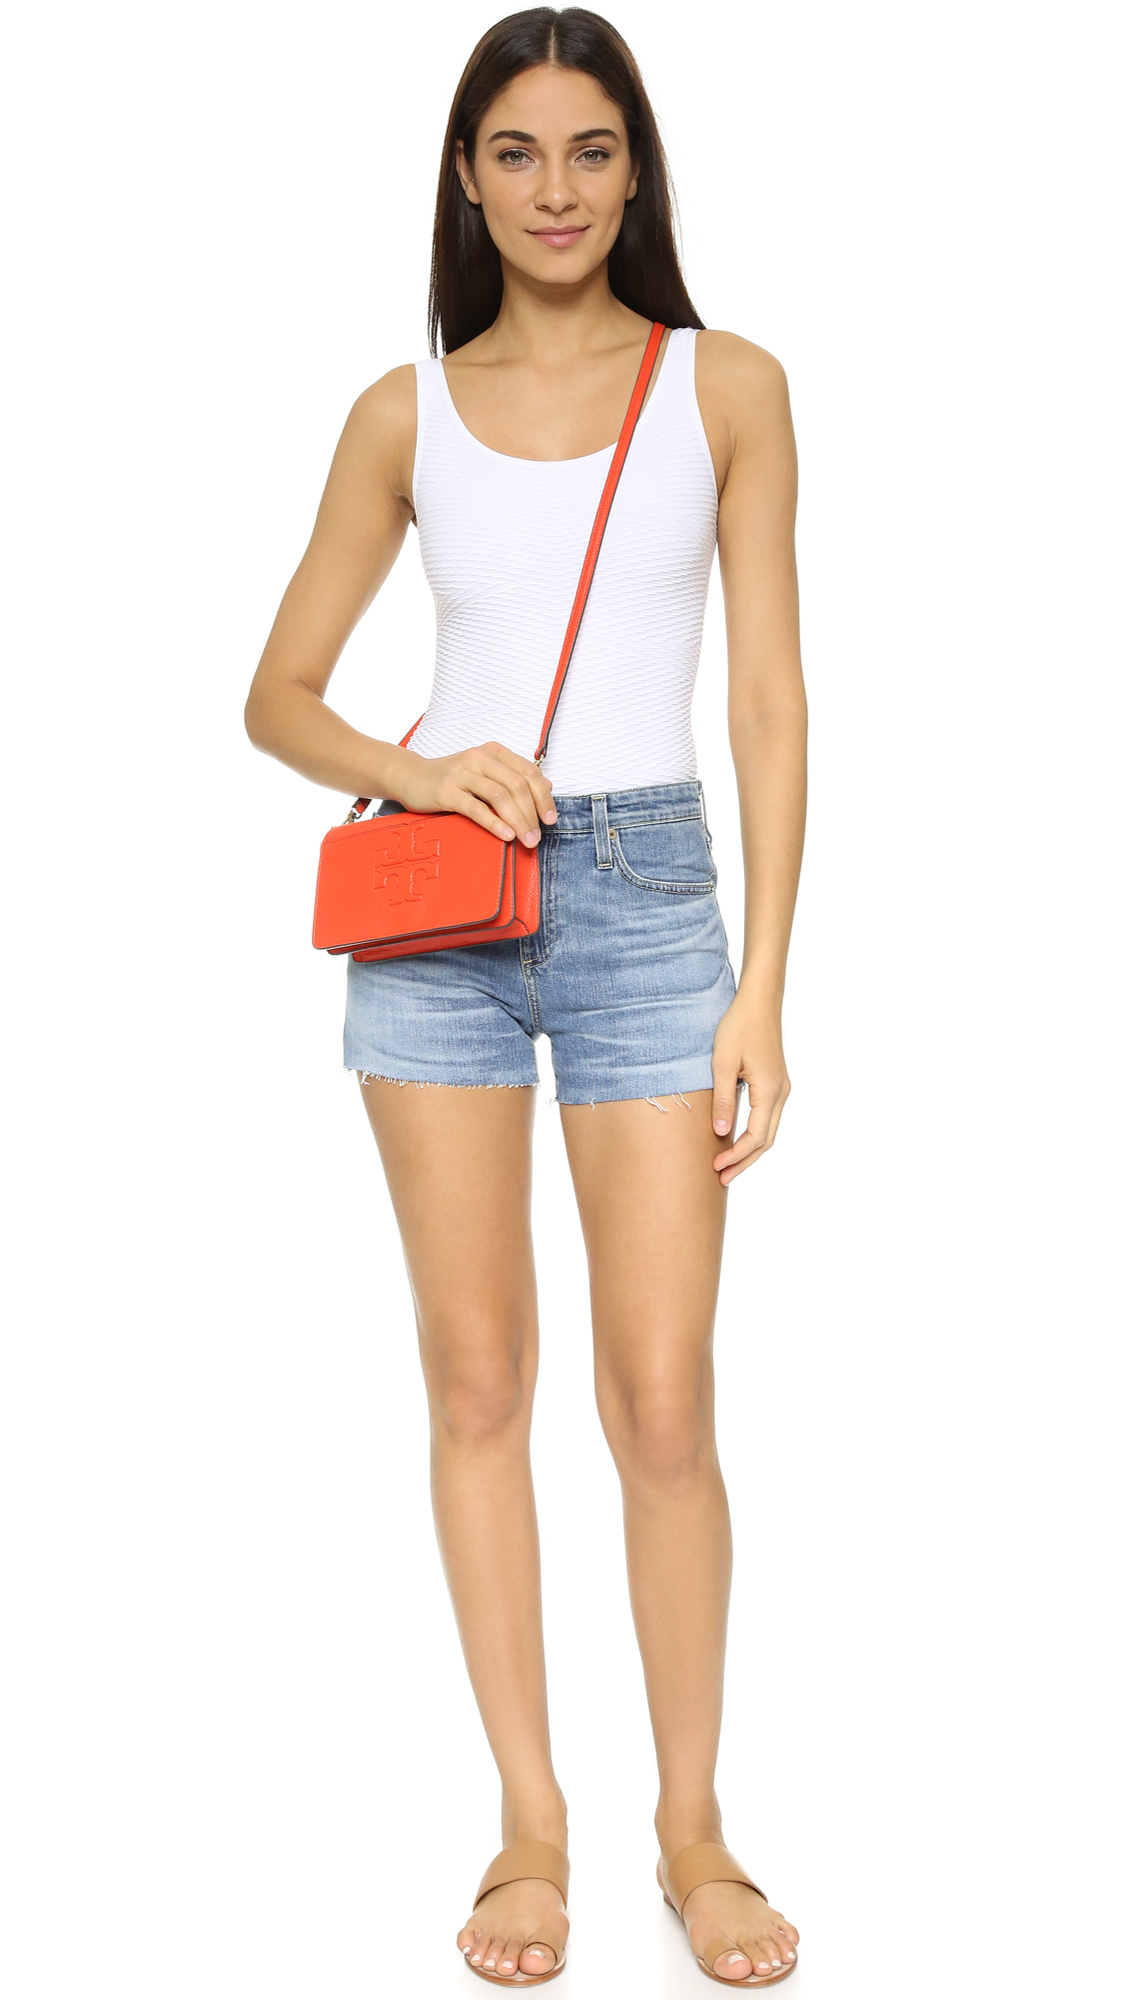 6a2d51607978 Lyst - Tory Burch Bombe T Small Cross Body Bag in Red